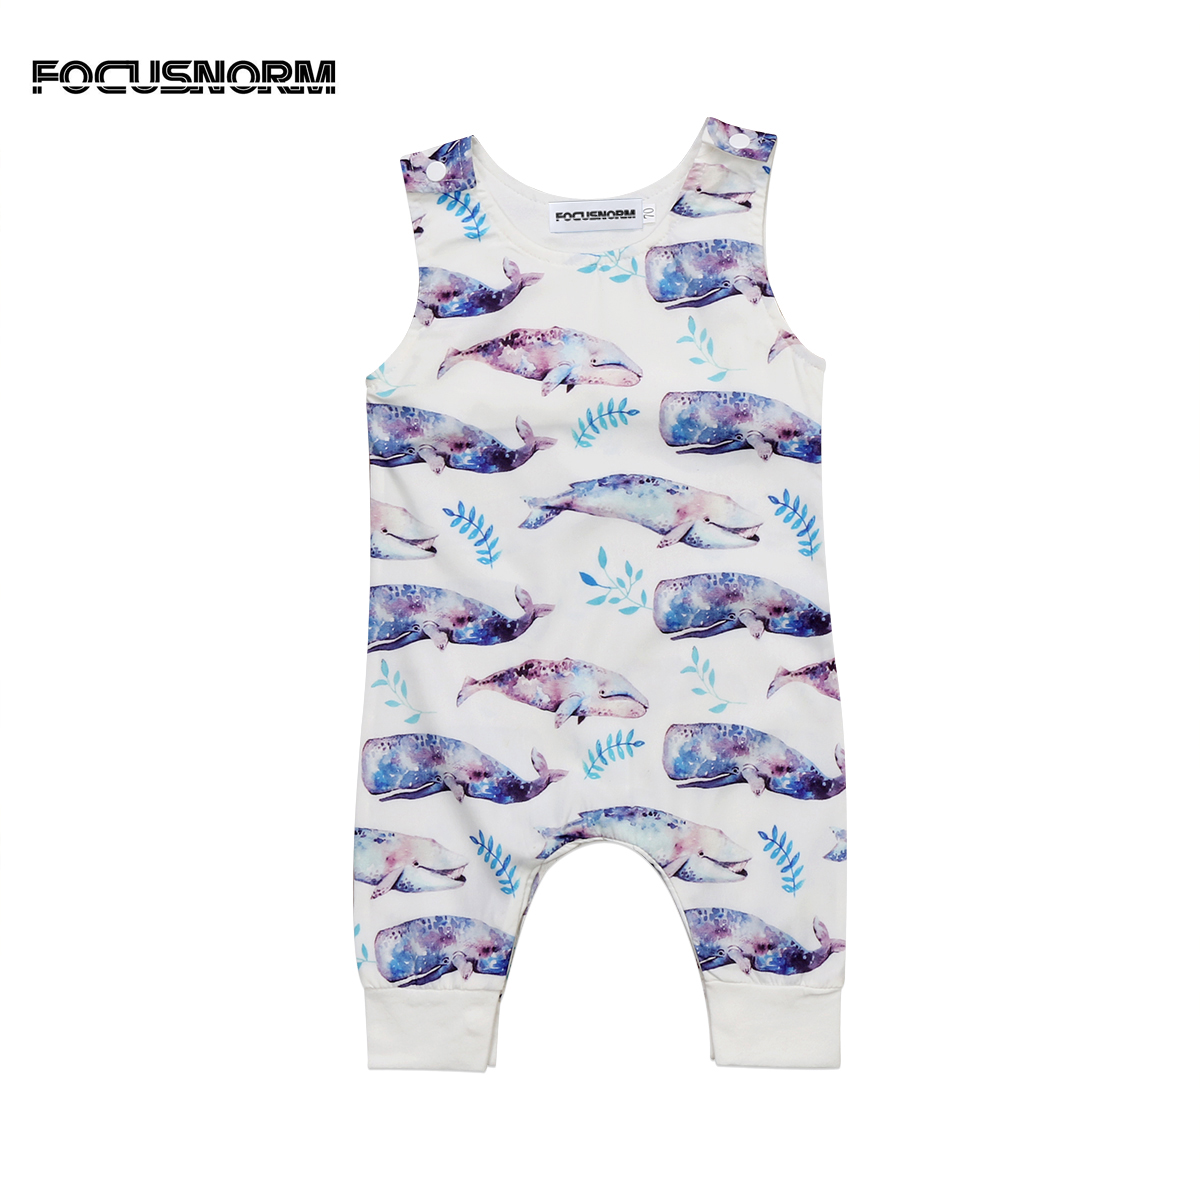 Fashion Newborn Baby Boys Girls Whale Printed Long Sleeves Romper Jumpsuit One Piece Cotton Outfits Clothes